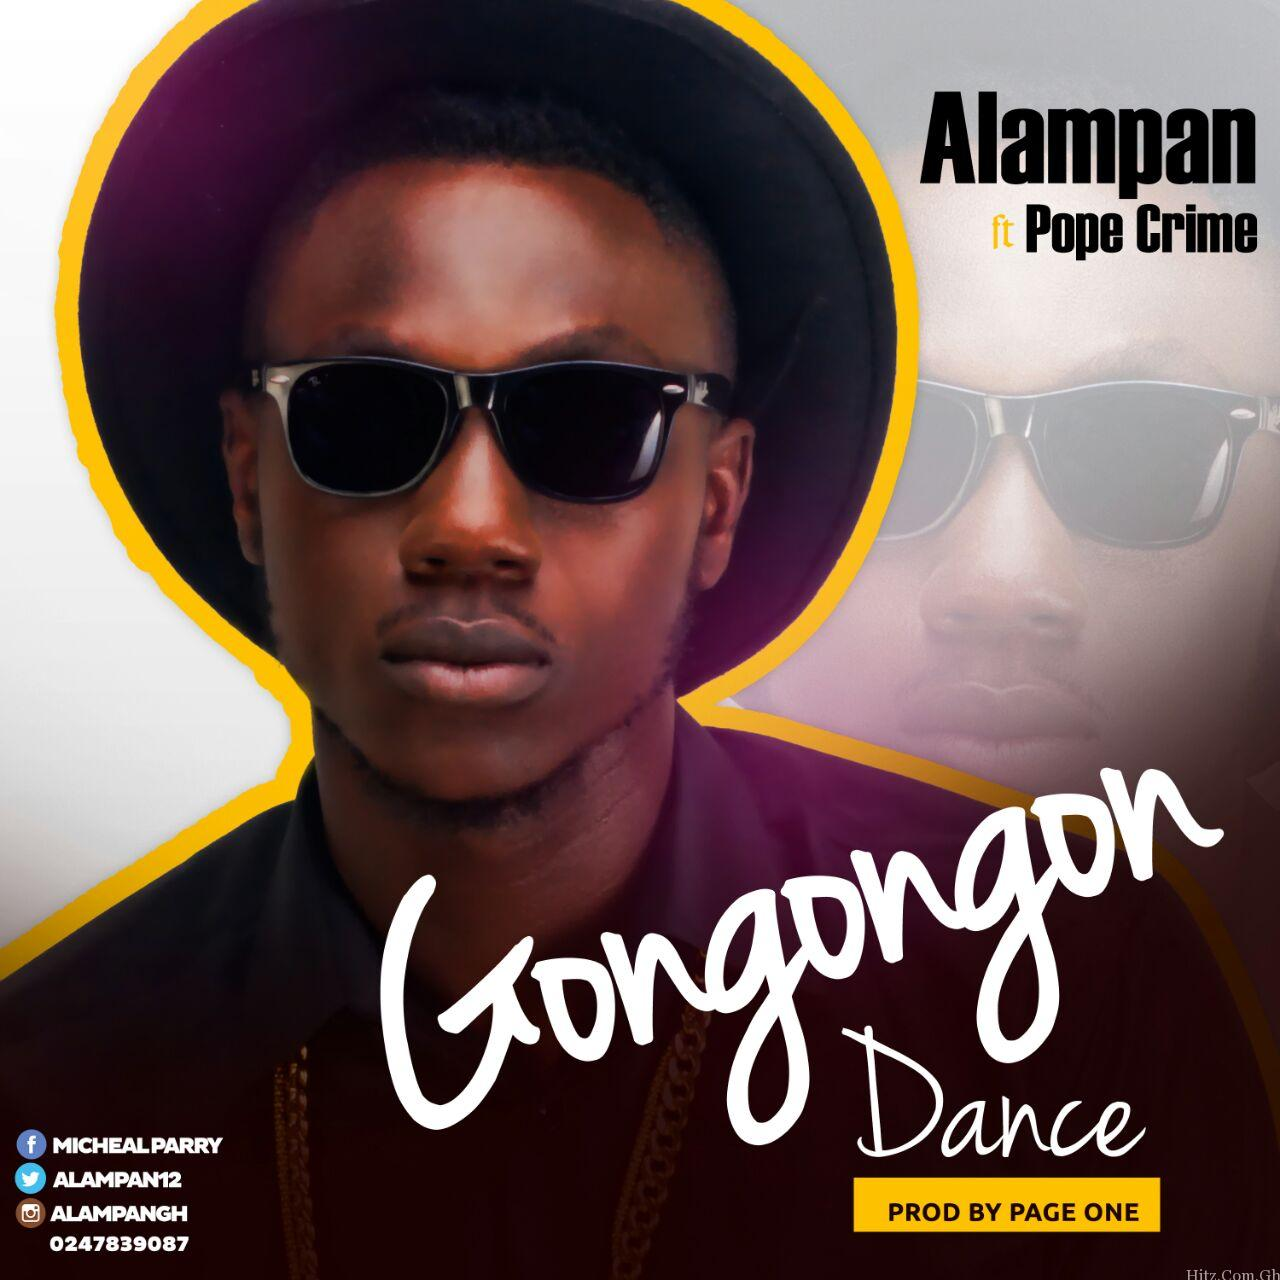 Alampan – Gongongon Dance (Ft. Pope Crime) (Prod. By Page One)